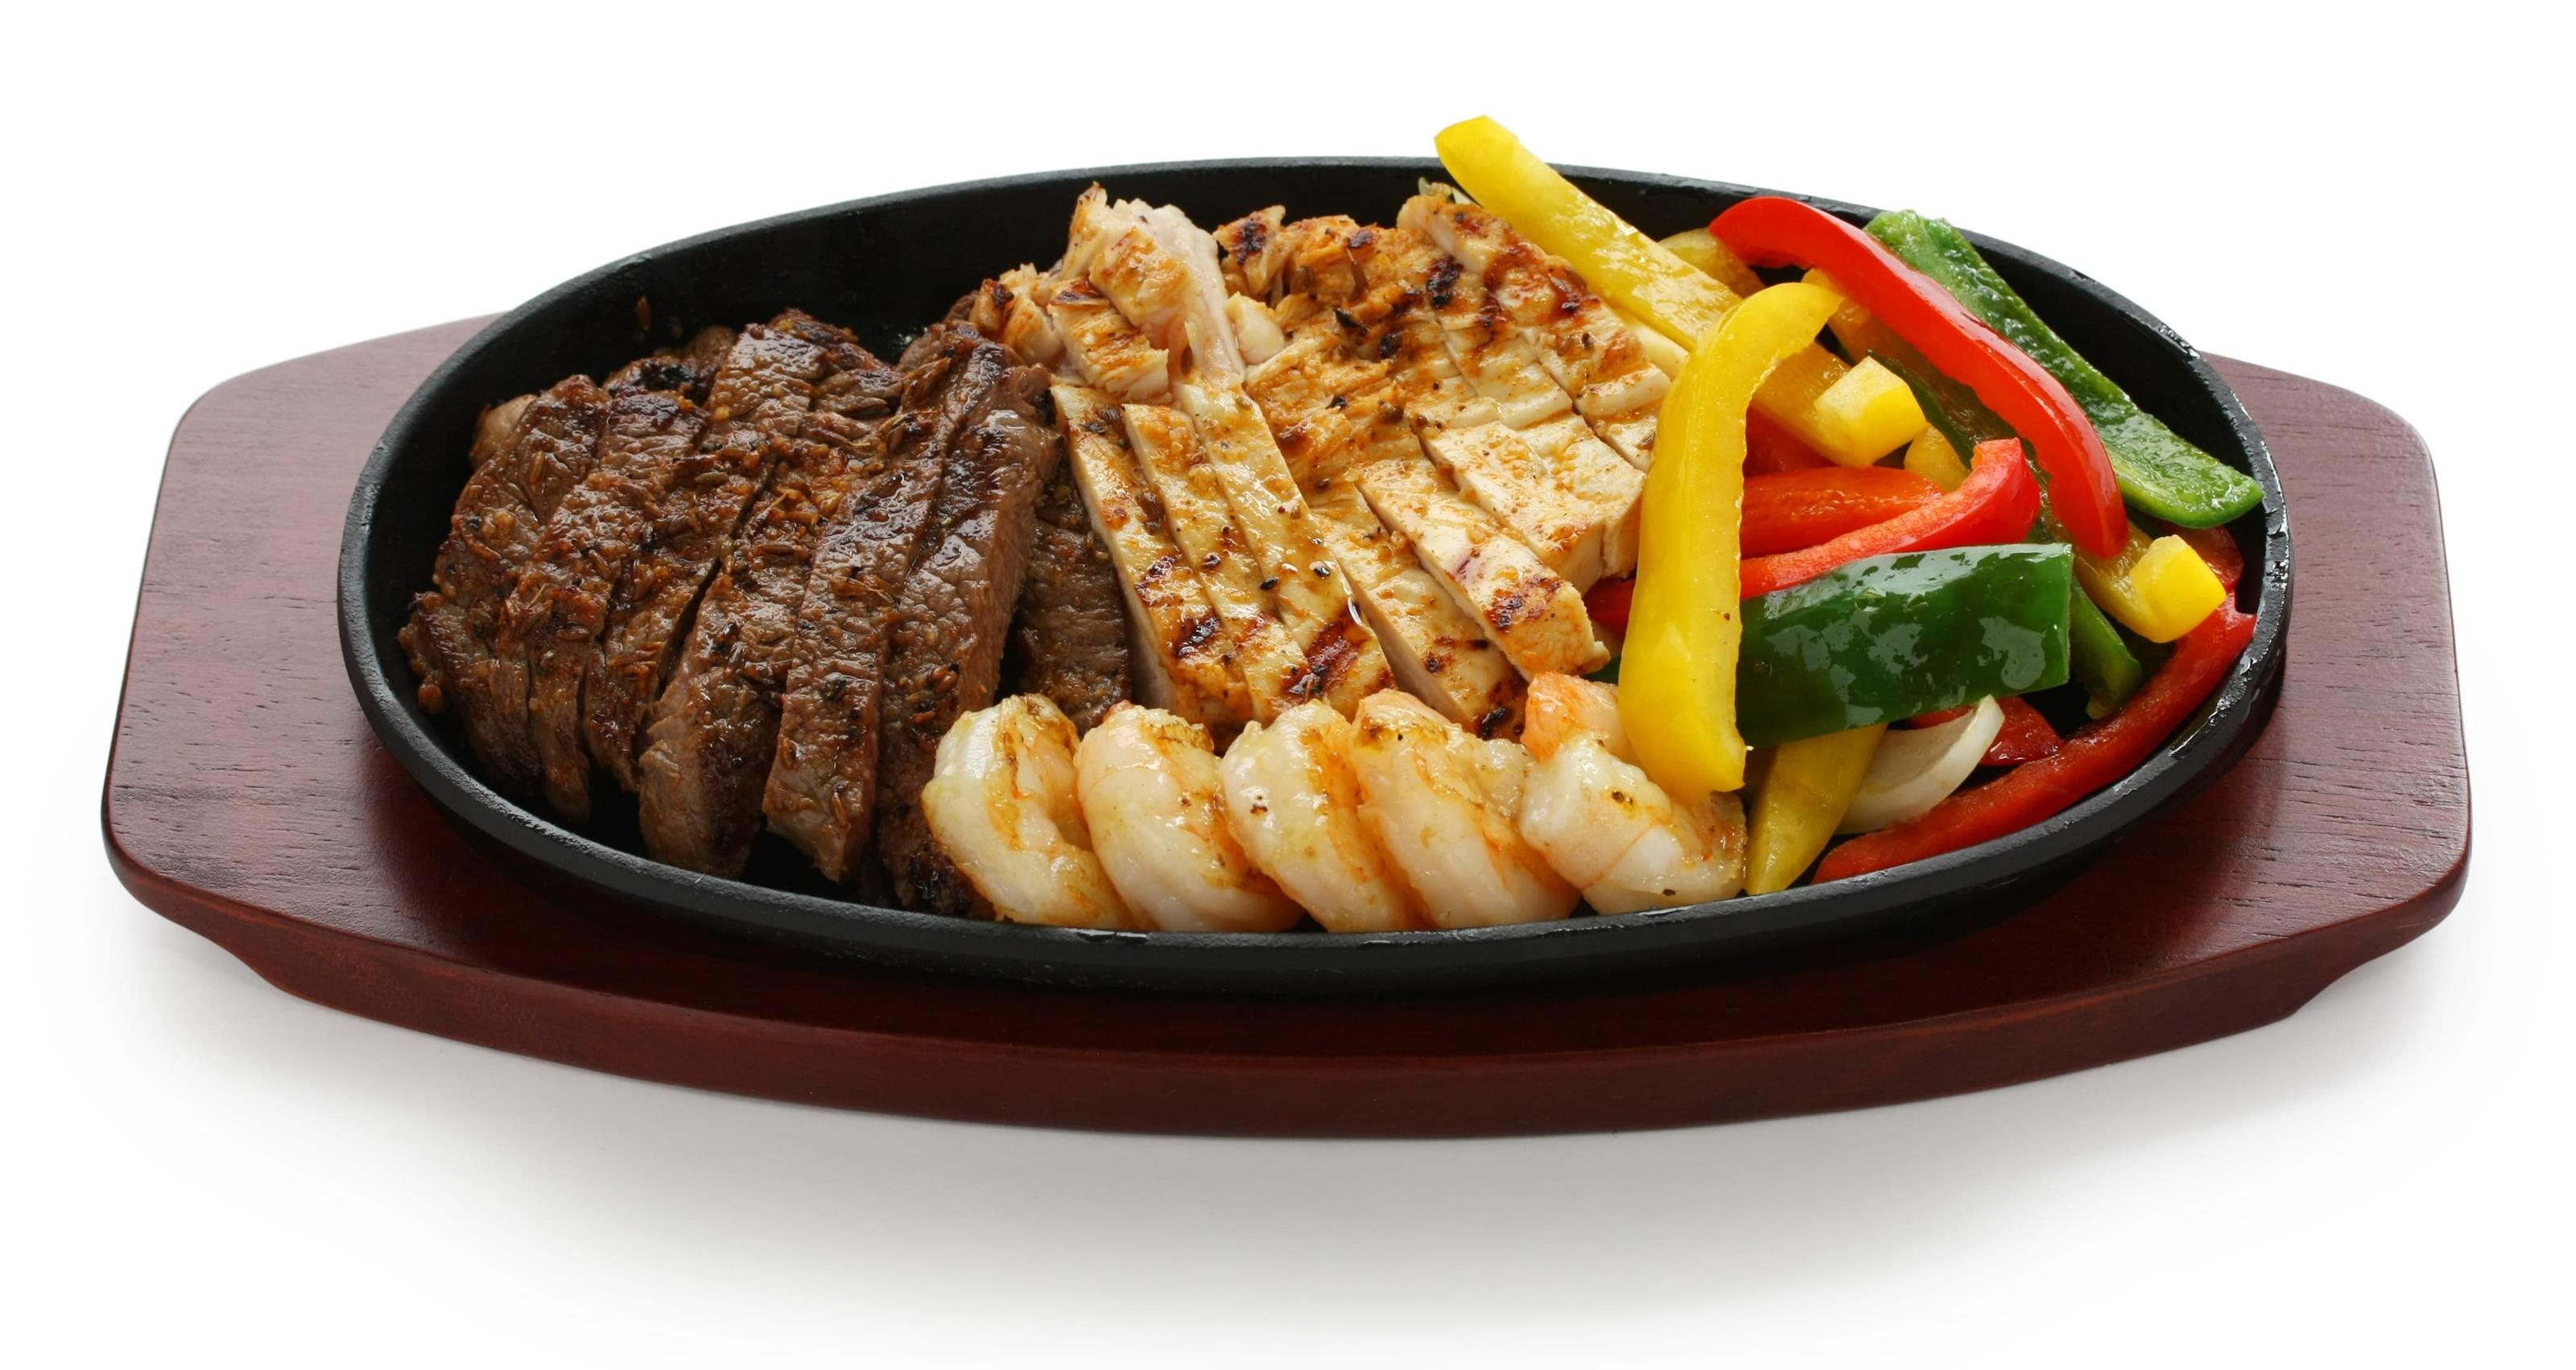 Combo fajita with steak, chicken, shrimp and vegetables